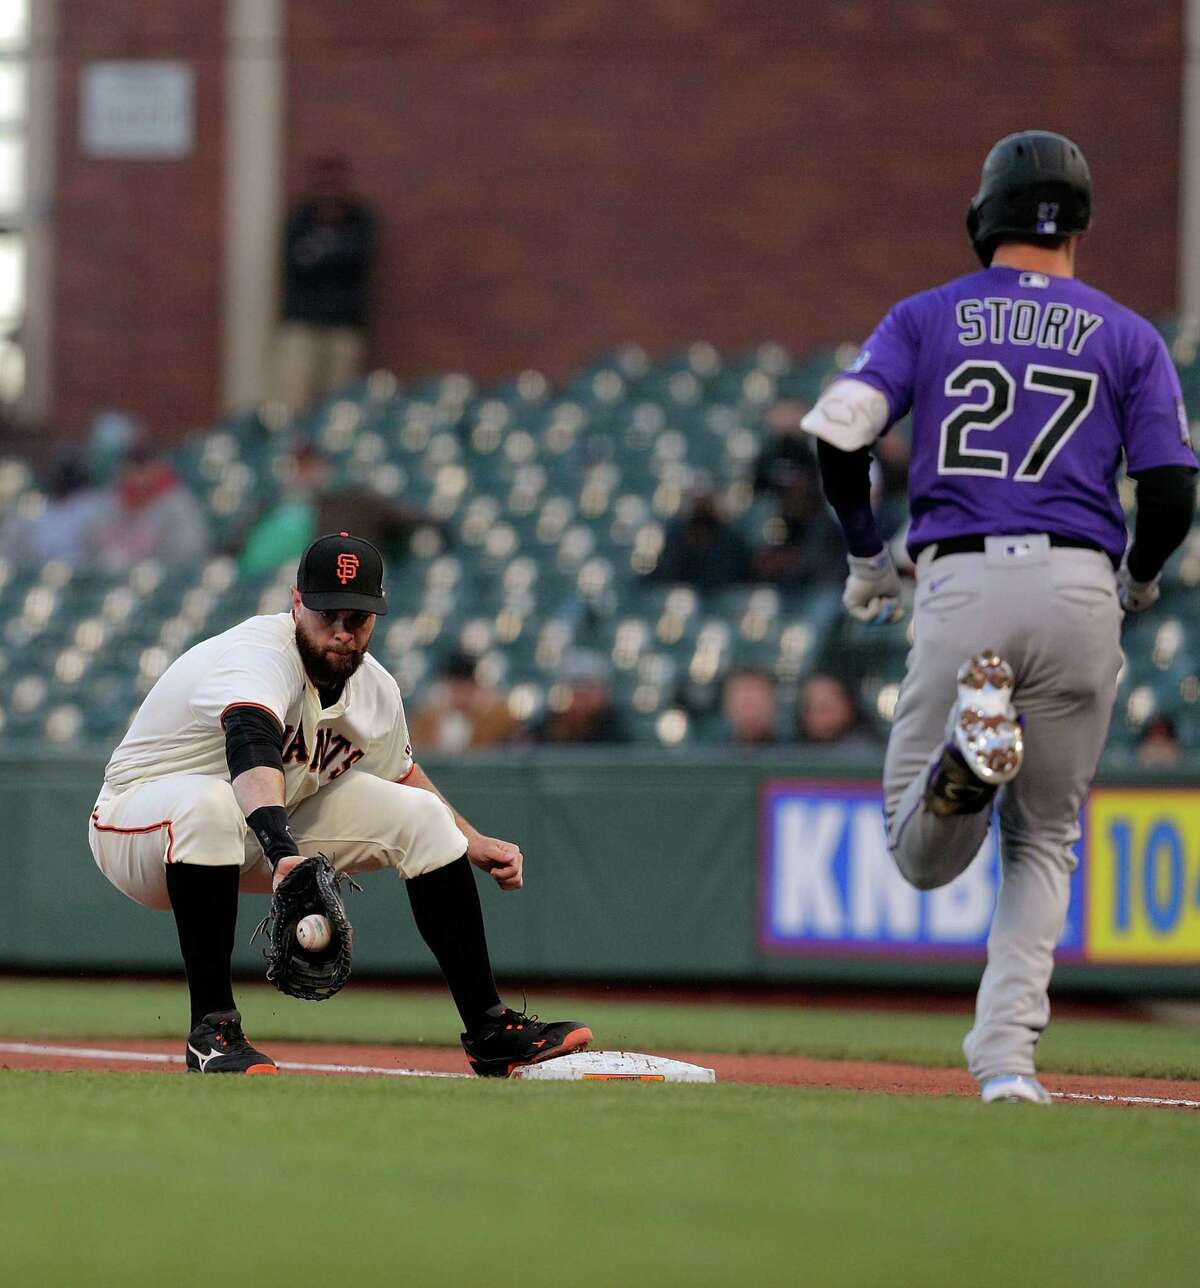 Brandon Belt (9) catches the throw from Aaron Sanchez (21) for the out on a comebacker hit by Trevor Story (27) in the third inning as the San Francisco Giants played the Colorado Rockies at Oracle Park in San Francisco Calif., on Tuesday, April 27, 2021.